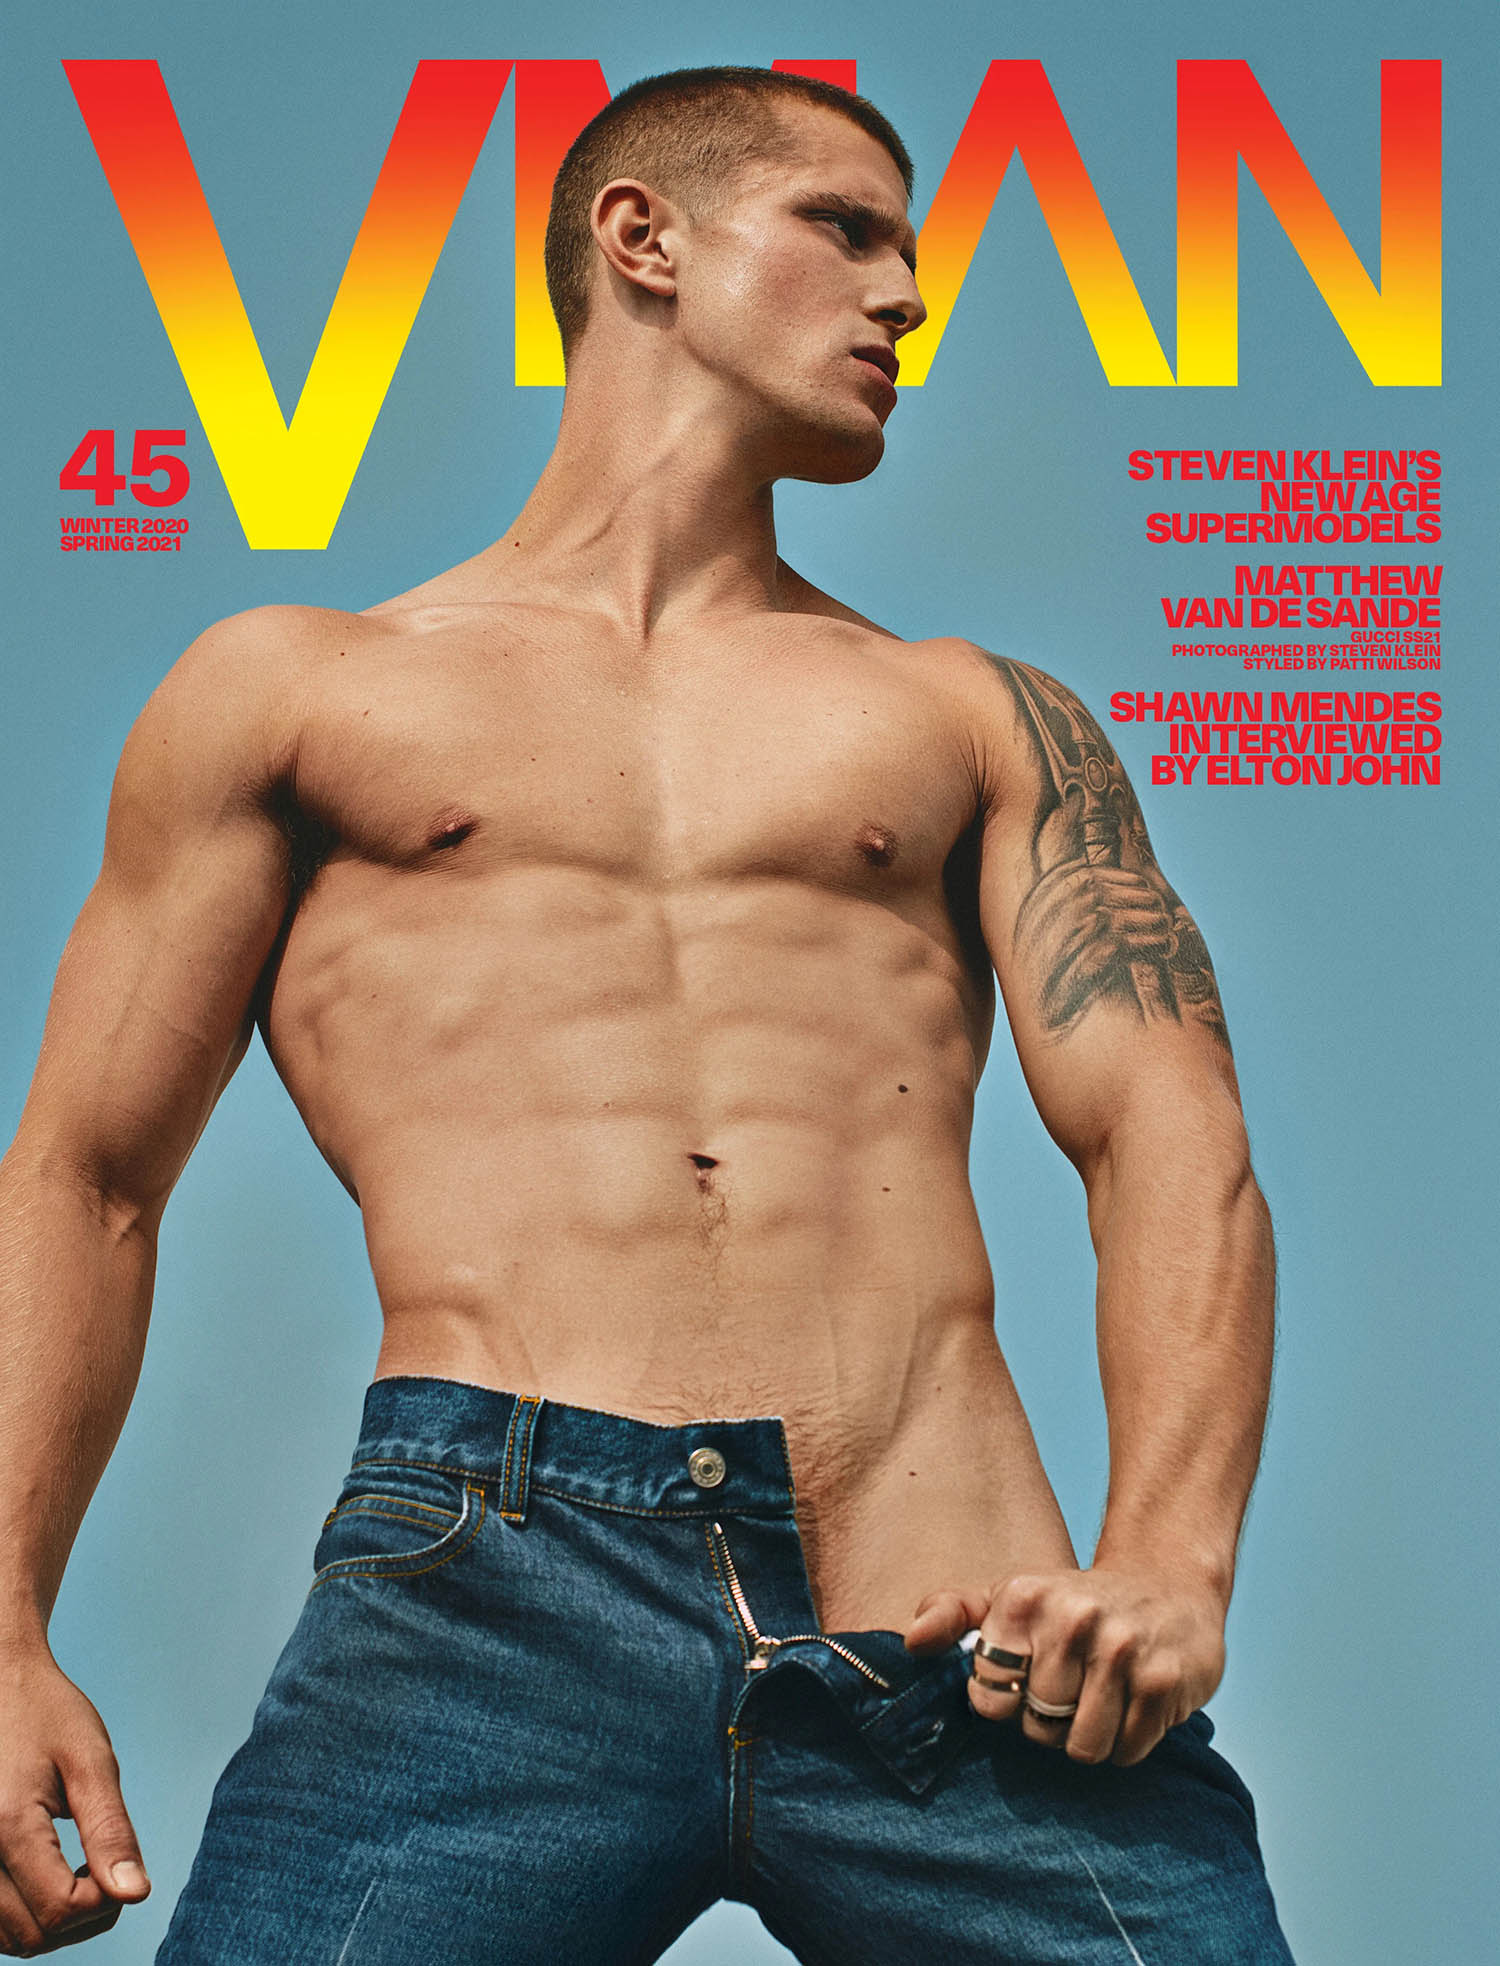 Matt van de Sande covers VMan Winter 2020 Spring 2021 by Steven Klein